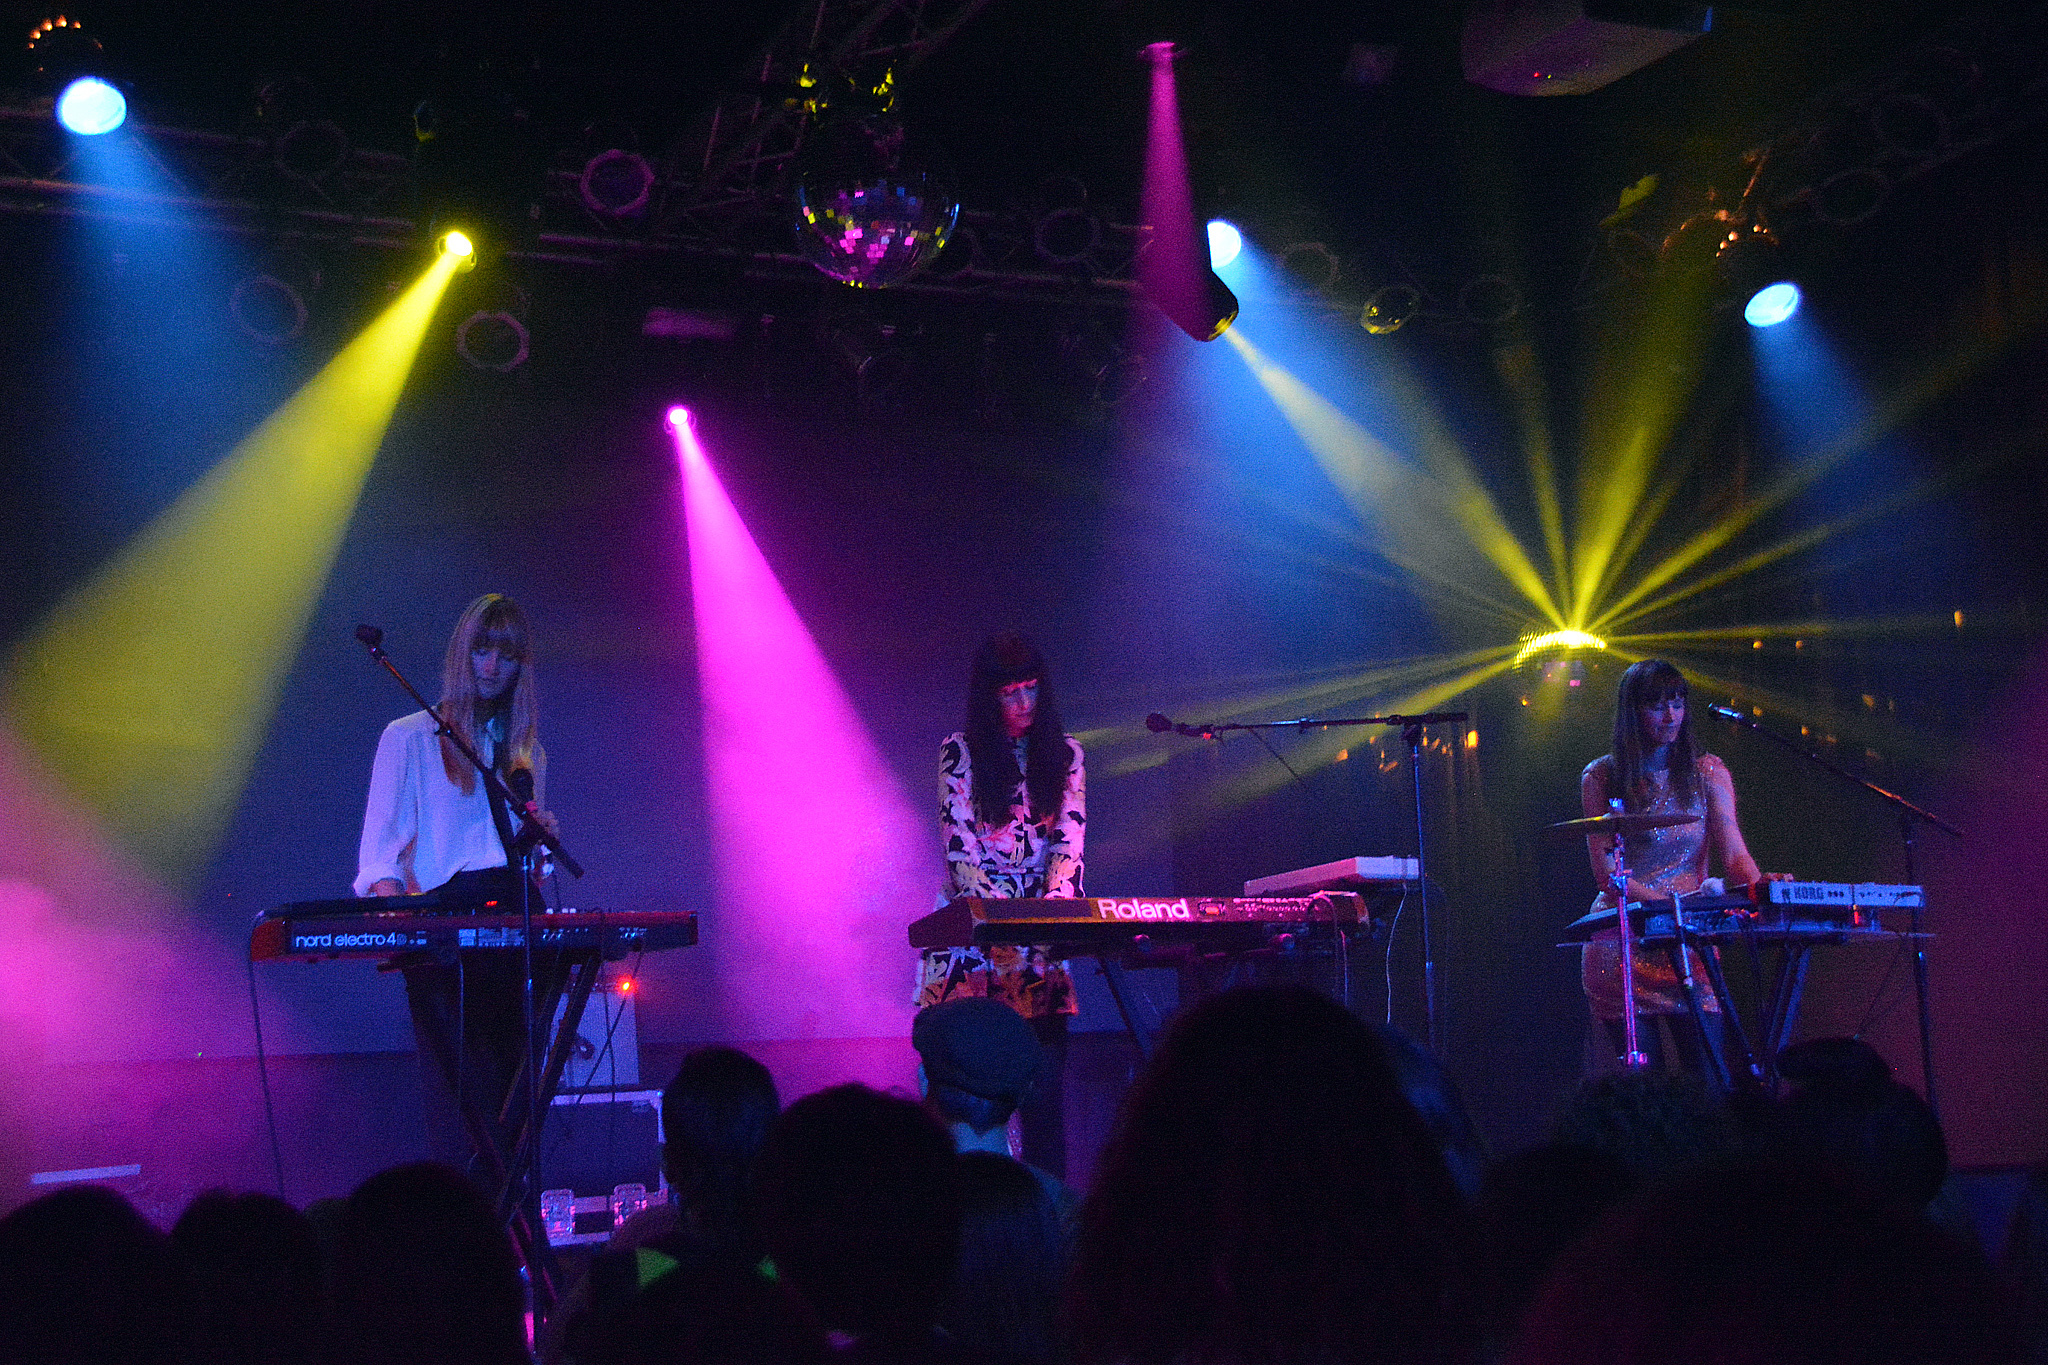 Au Revoir Simone performs at Highline Ballroom during the 2013 CMJ Music Marathon on October 16, 2013.